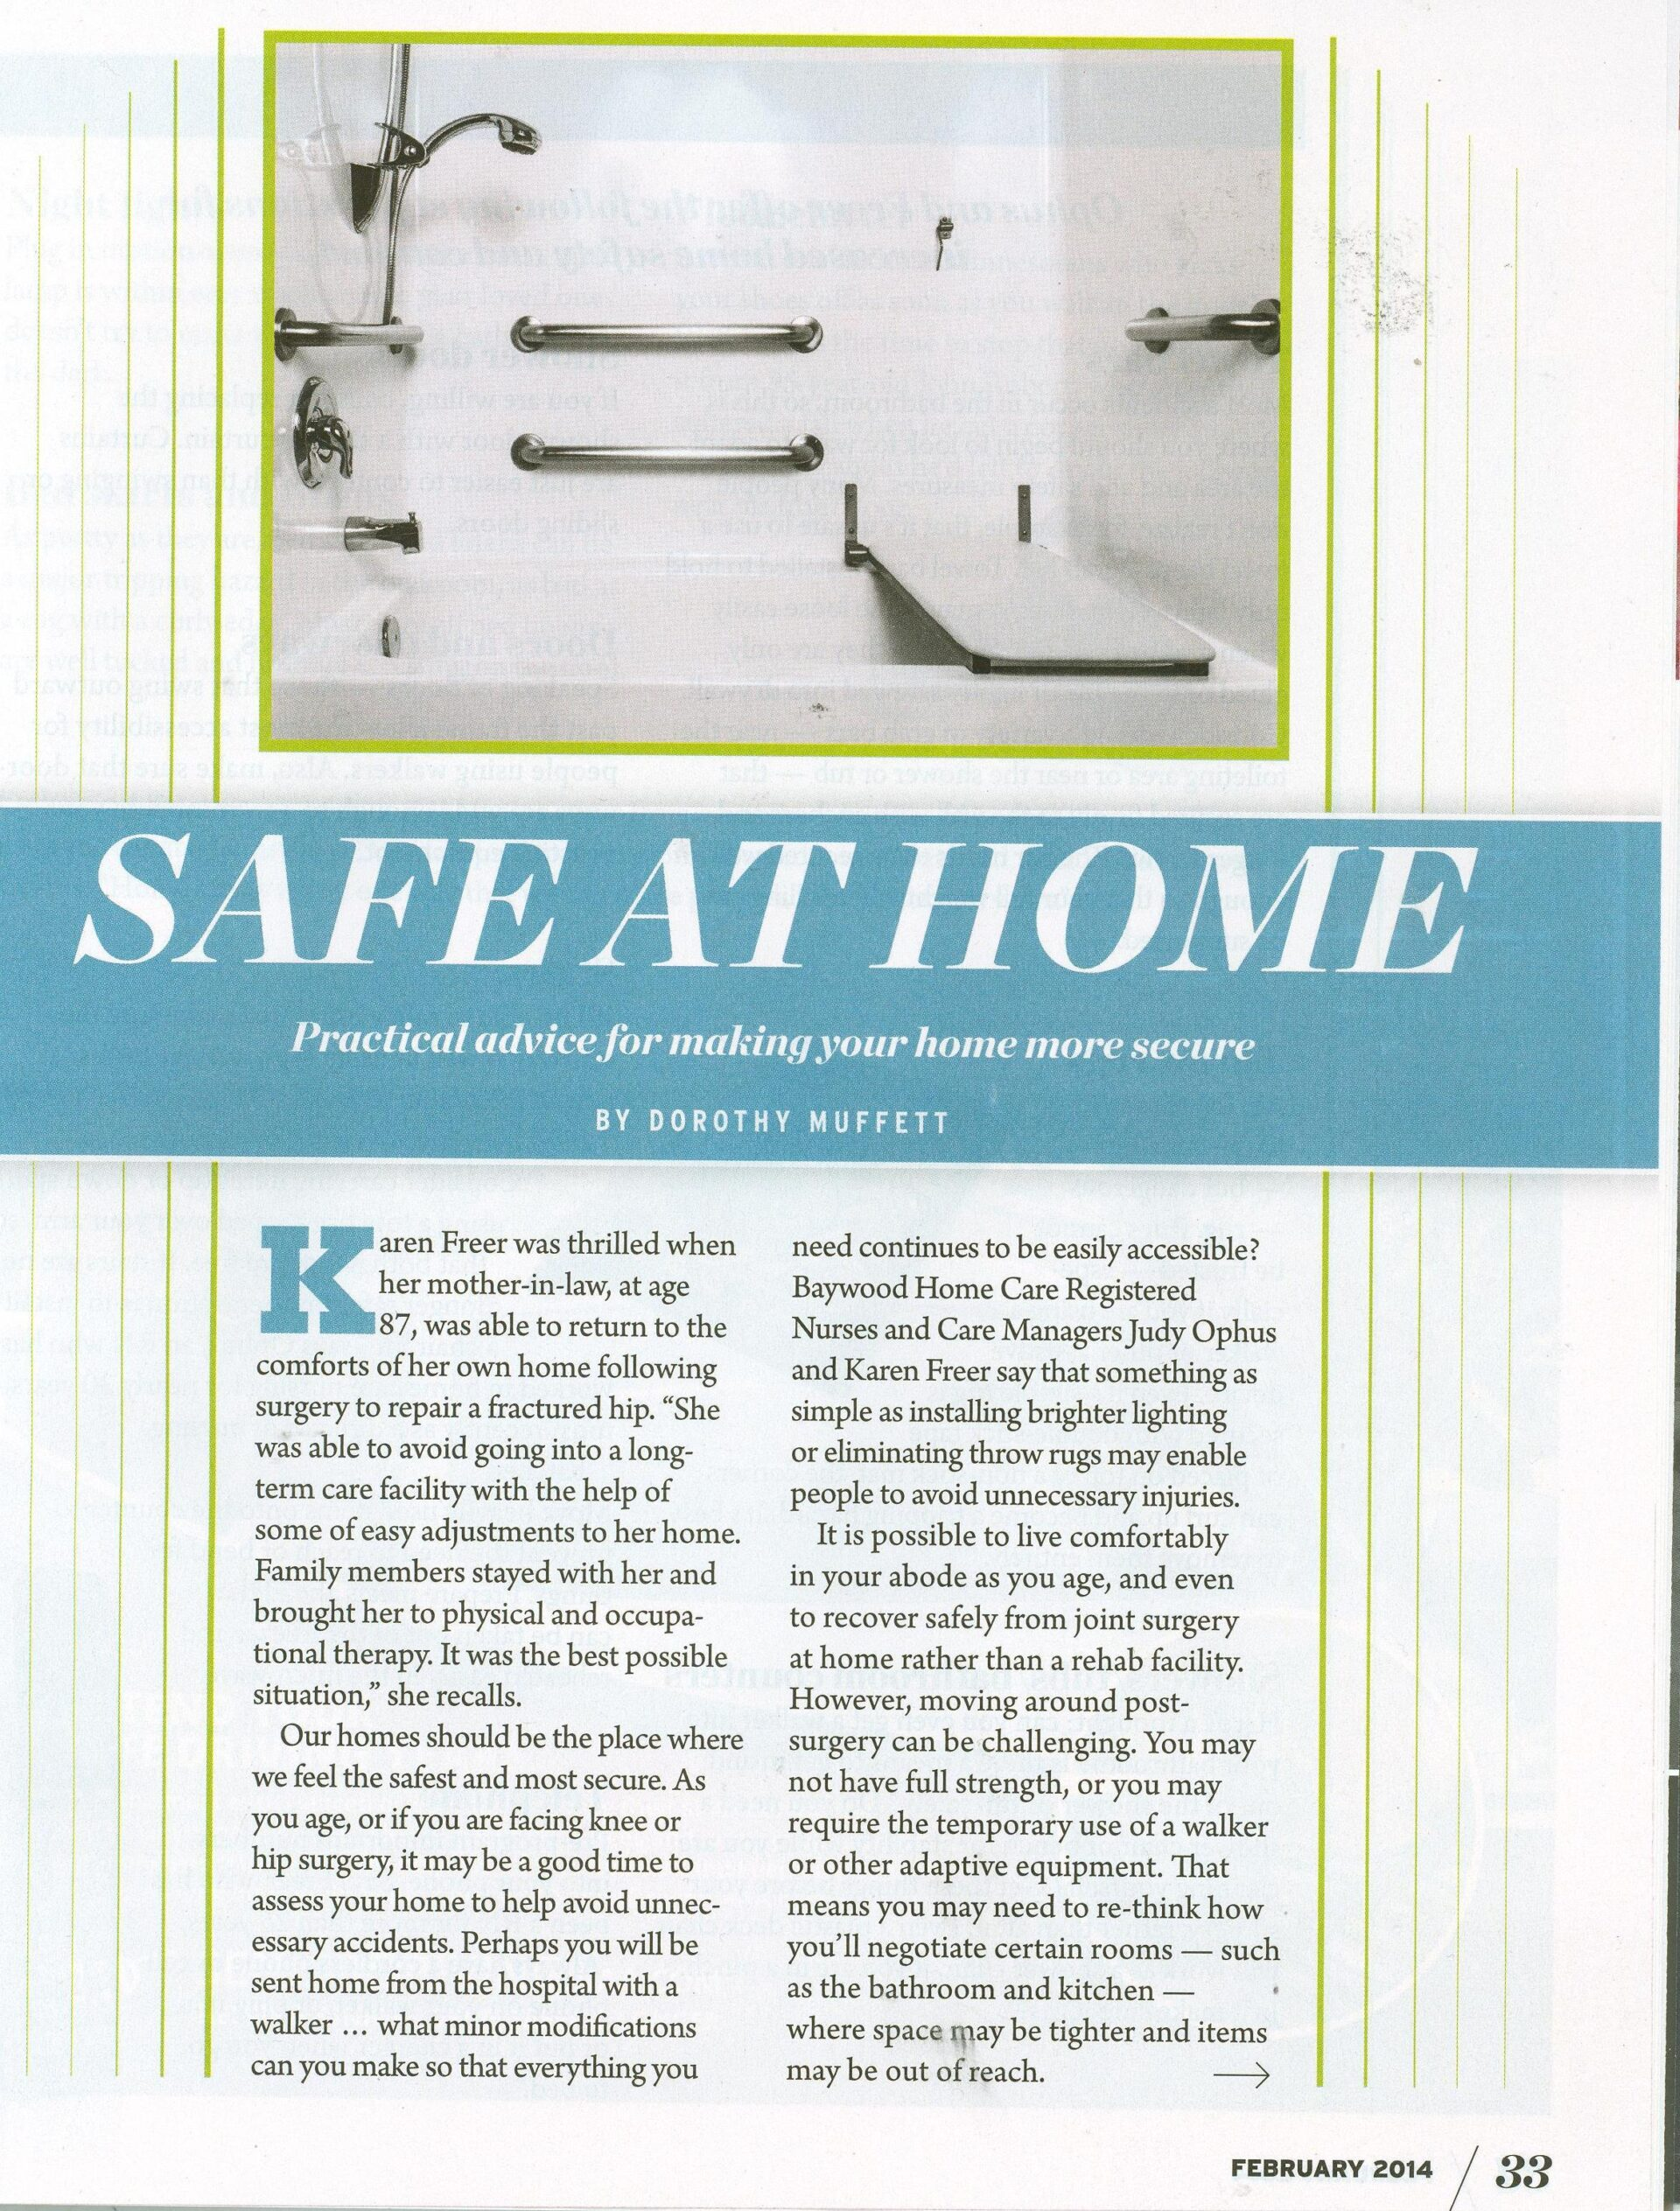 Safe at Home - Making Your Home More Secure l Baywood